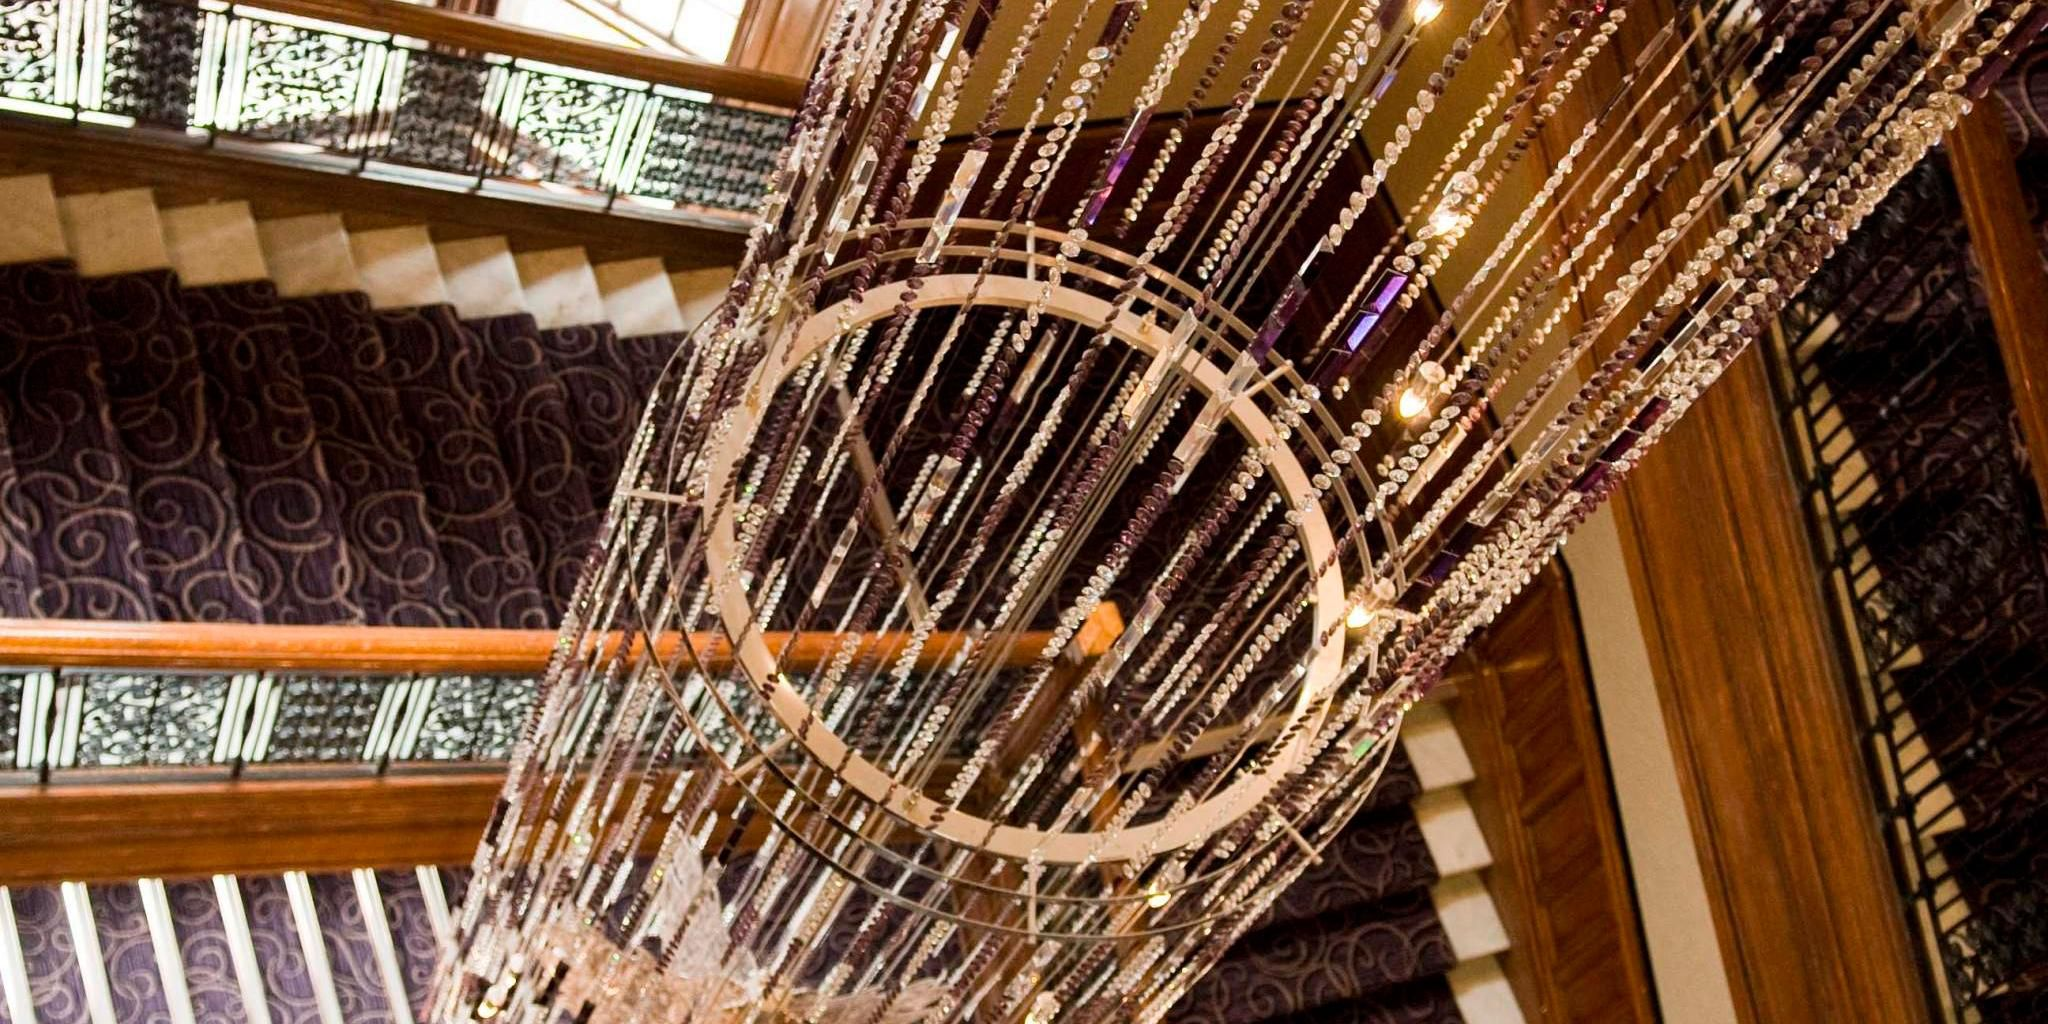 Stunning 25m chandelier and sweeping grand staircase